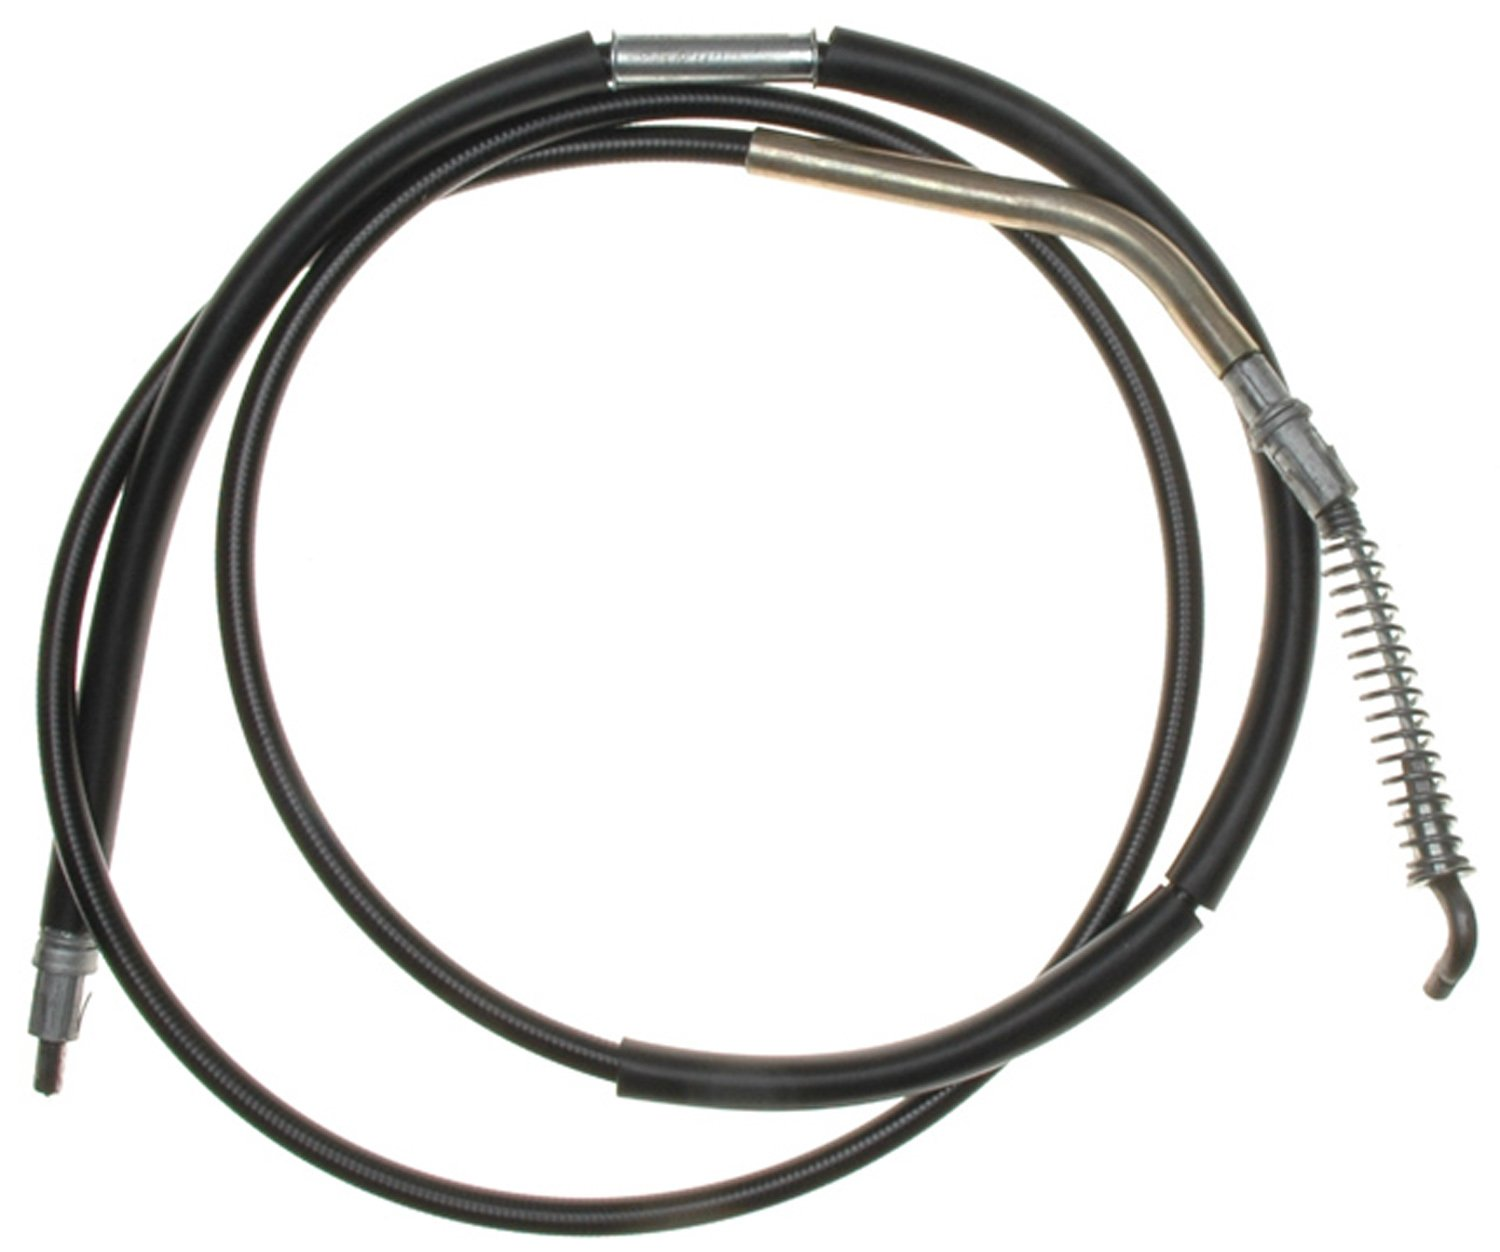 ACDelco 18P2526 Professional Rear Passenger Side Parking Brake Cable Assembly